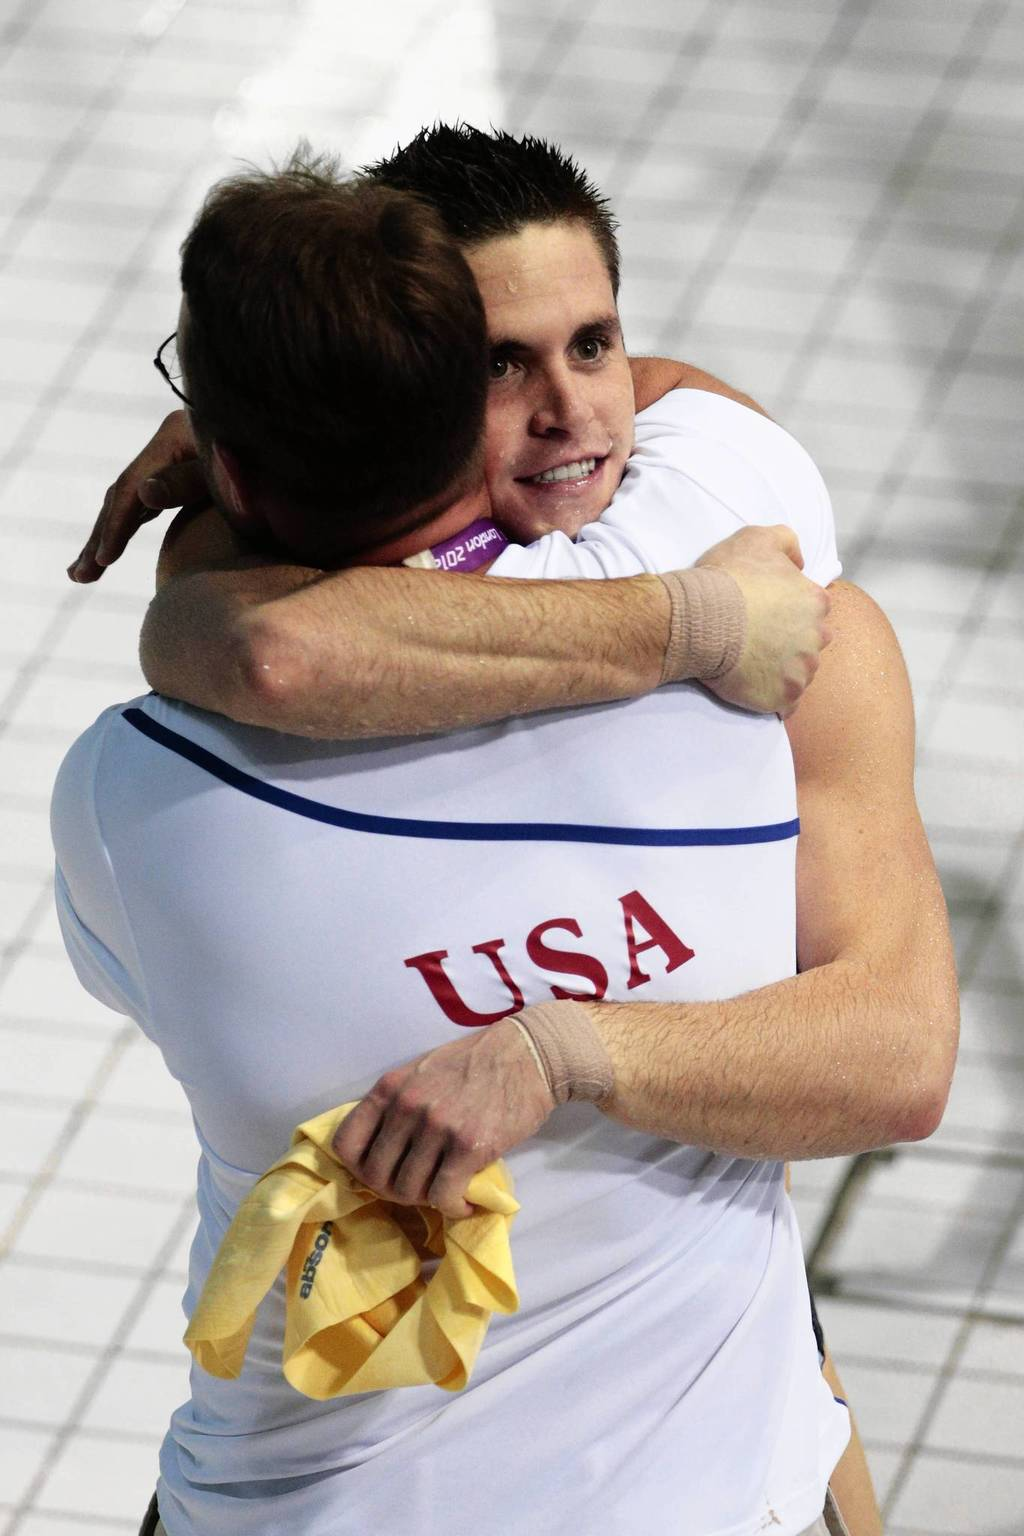 David Boudia of the United States celebrates with his coach Adam Soldati after winning the Men's 10m Platform Diving Final.